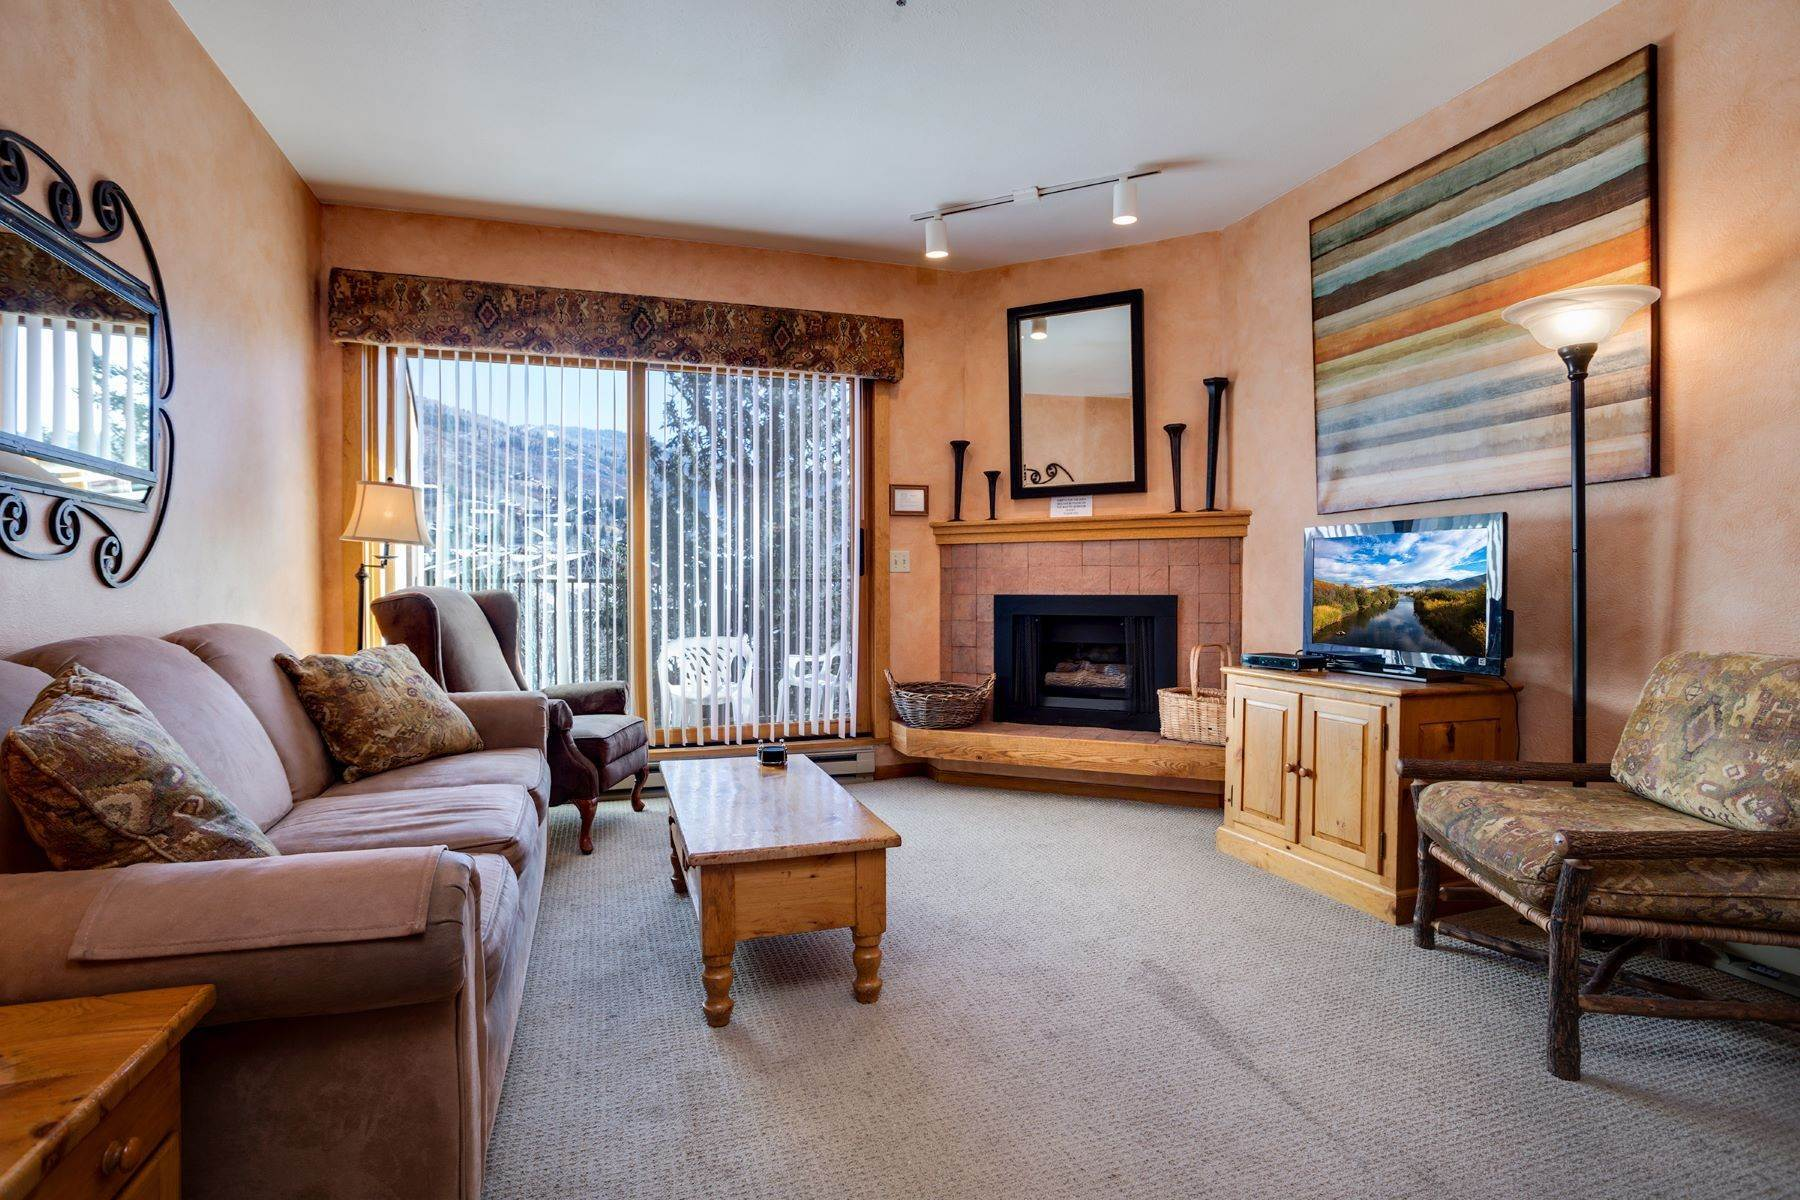 Condominiums for Sale at Snow Flower Condominium 2200 Apres Ski Way #302 Steamboat Springs, Colorado 80487 United States